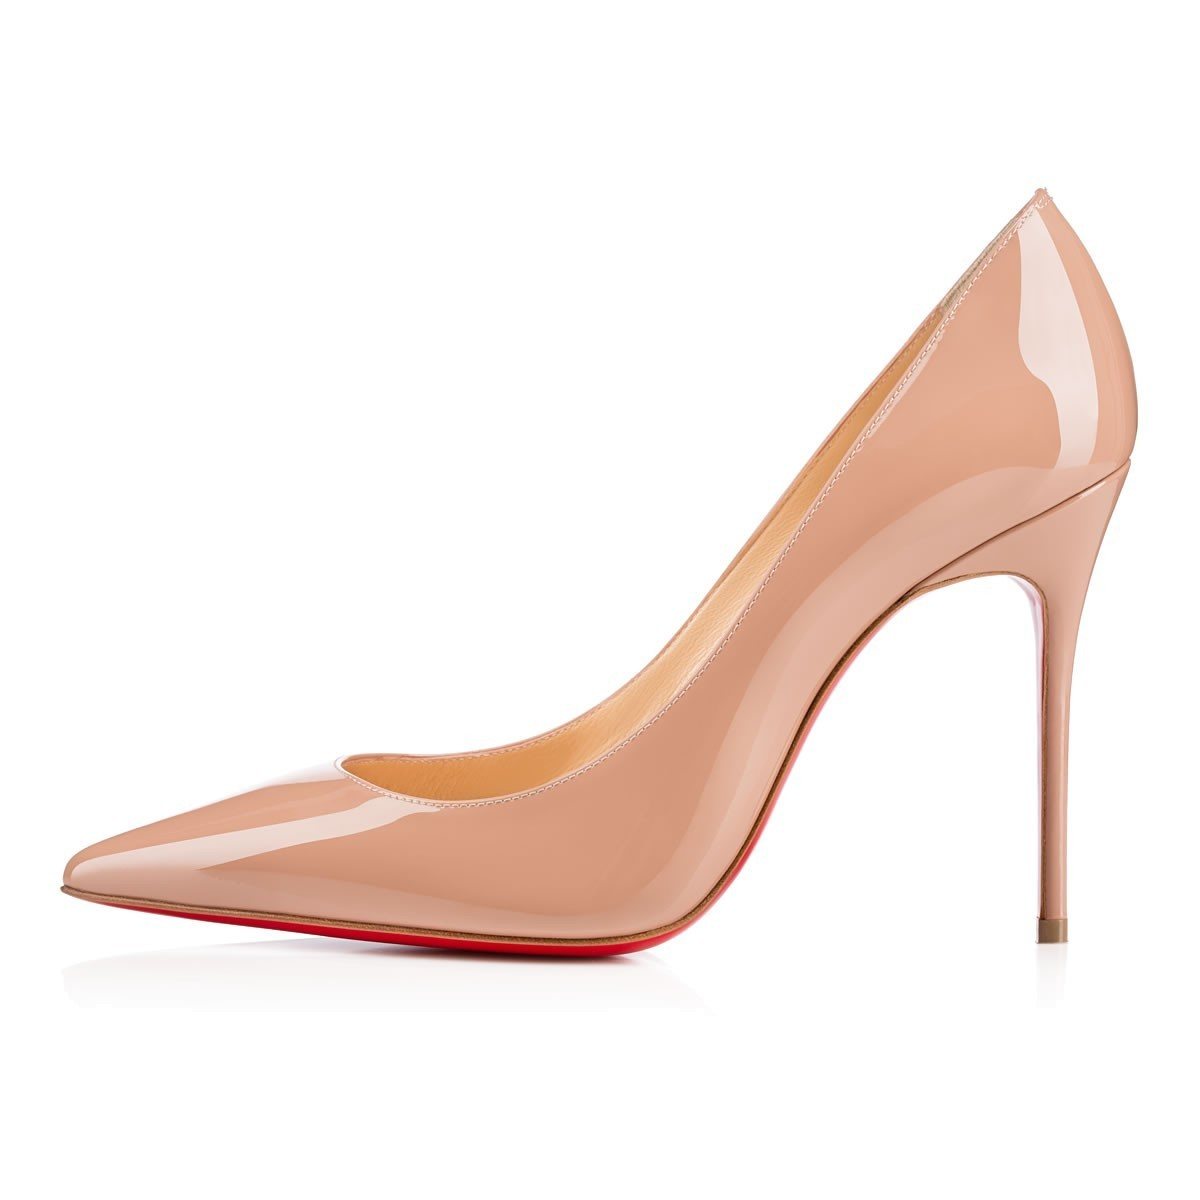 【CHRISTIAN LOUBOUTIN】Decollete 554 100 mm